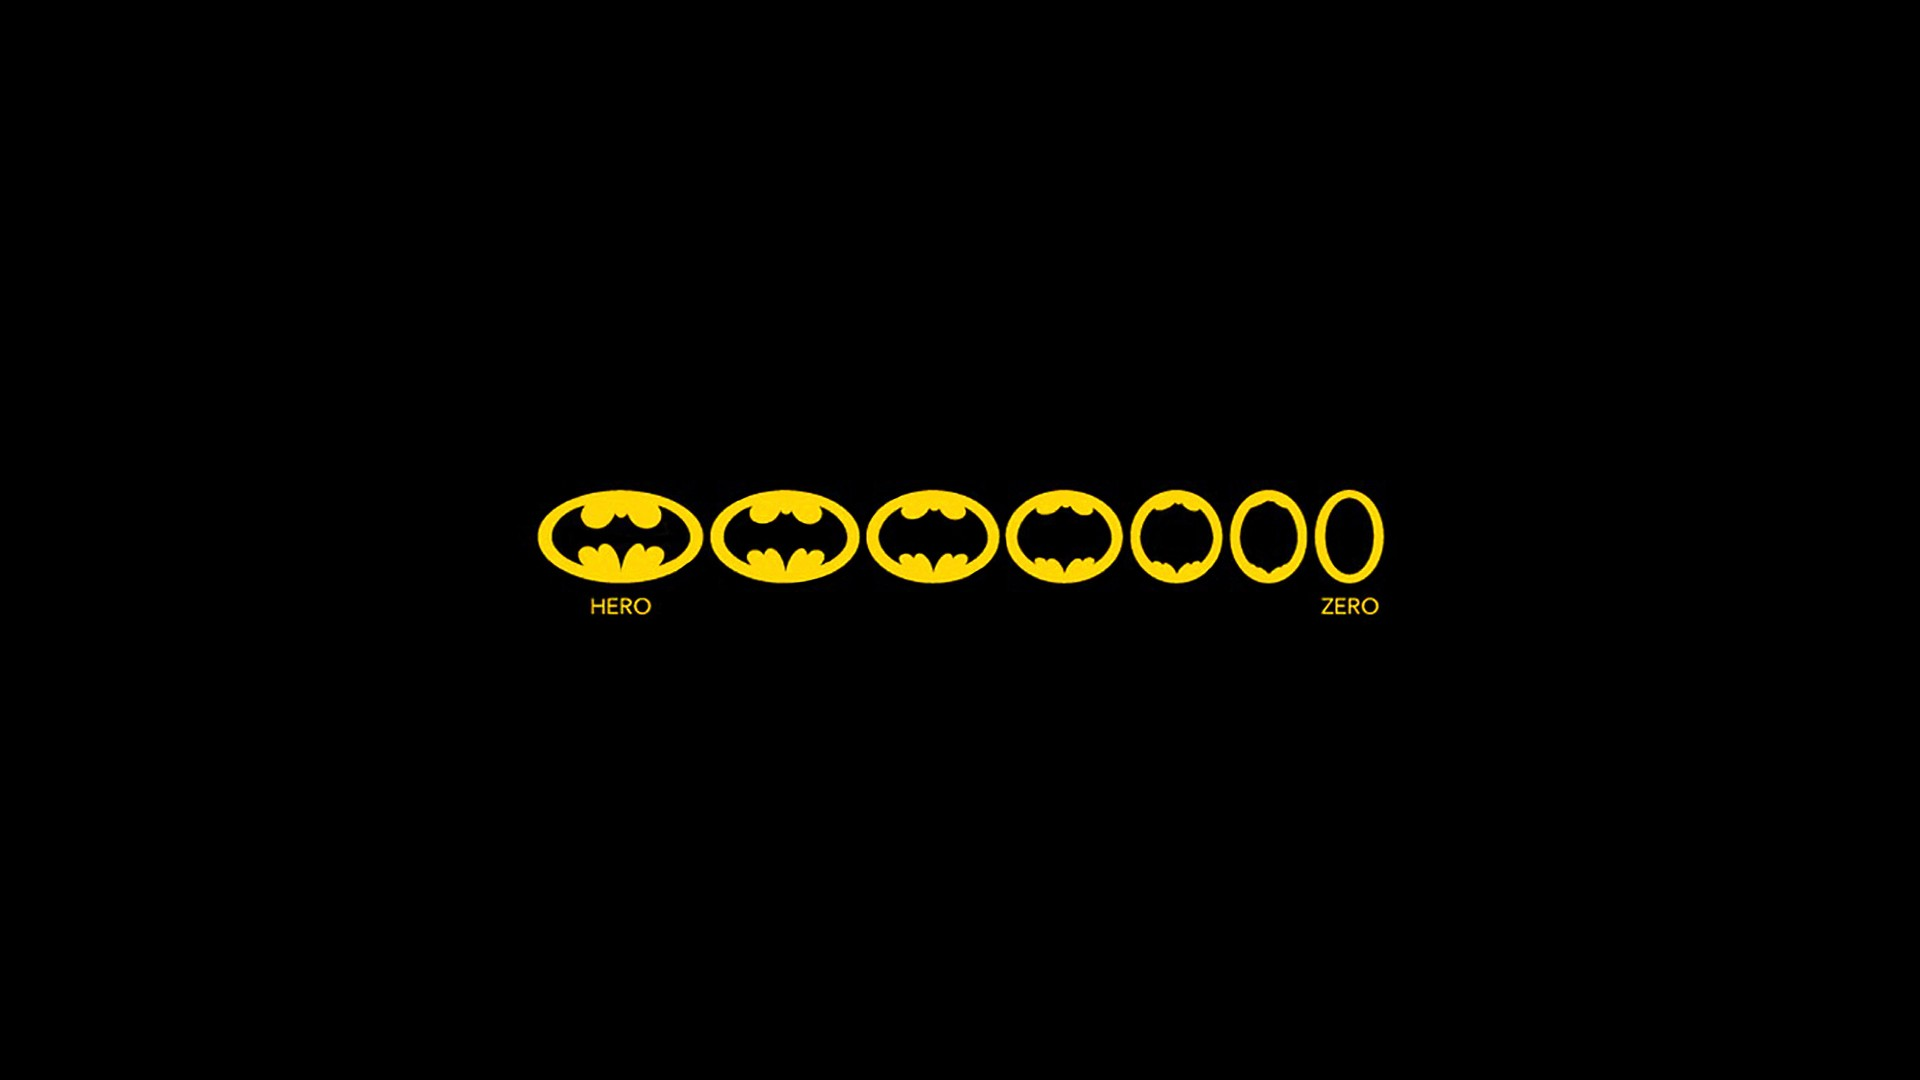 funny batman logo -logo brands for free hd 3d